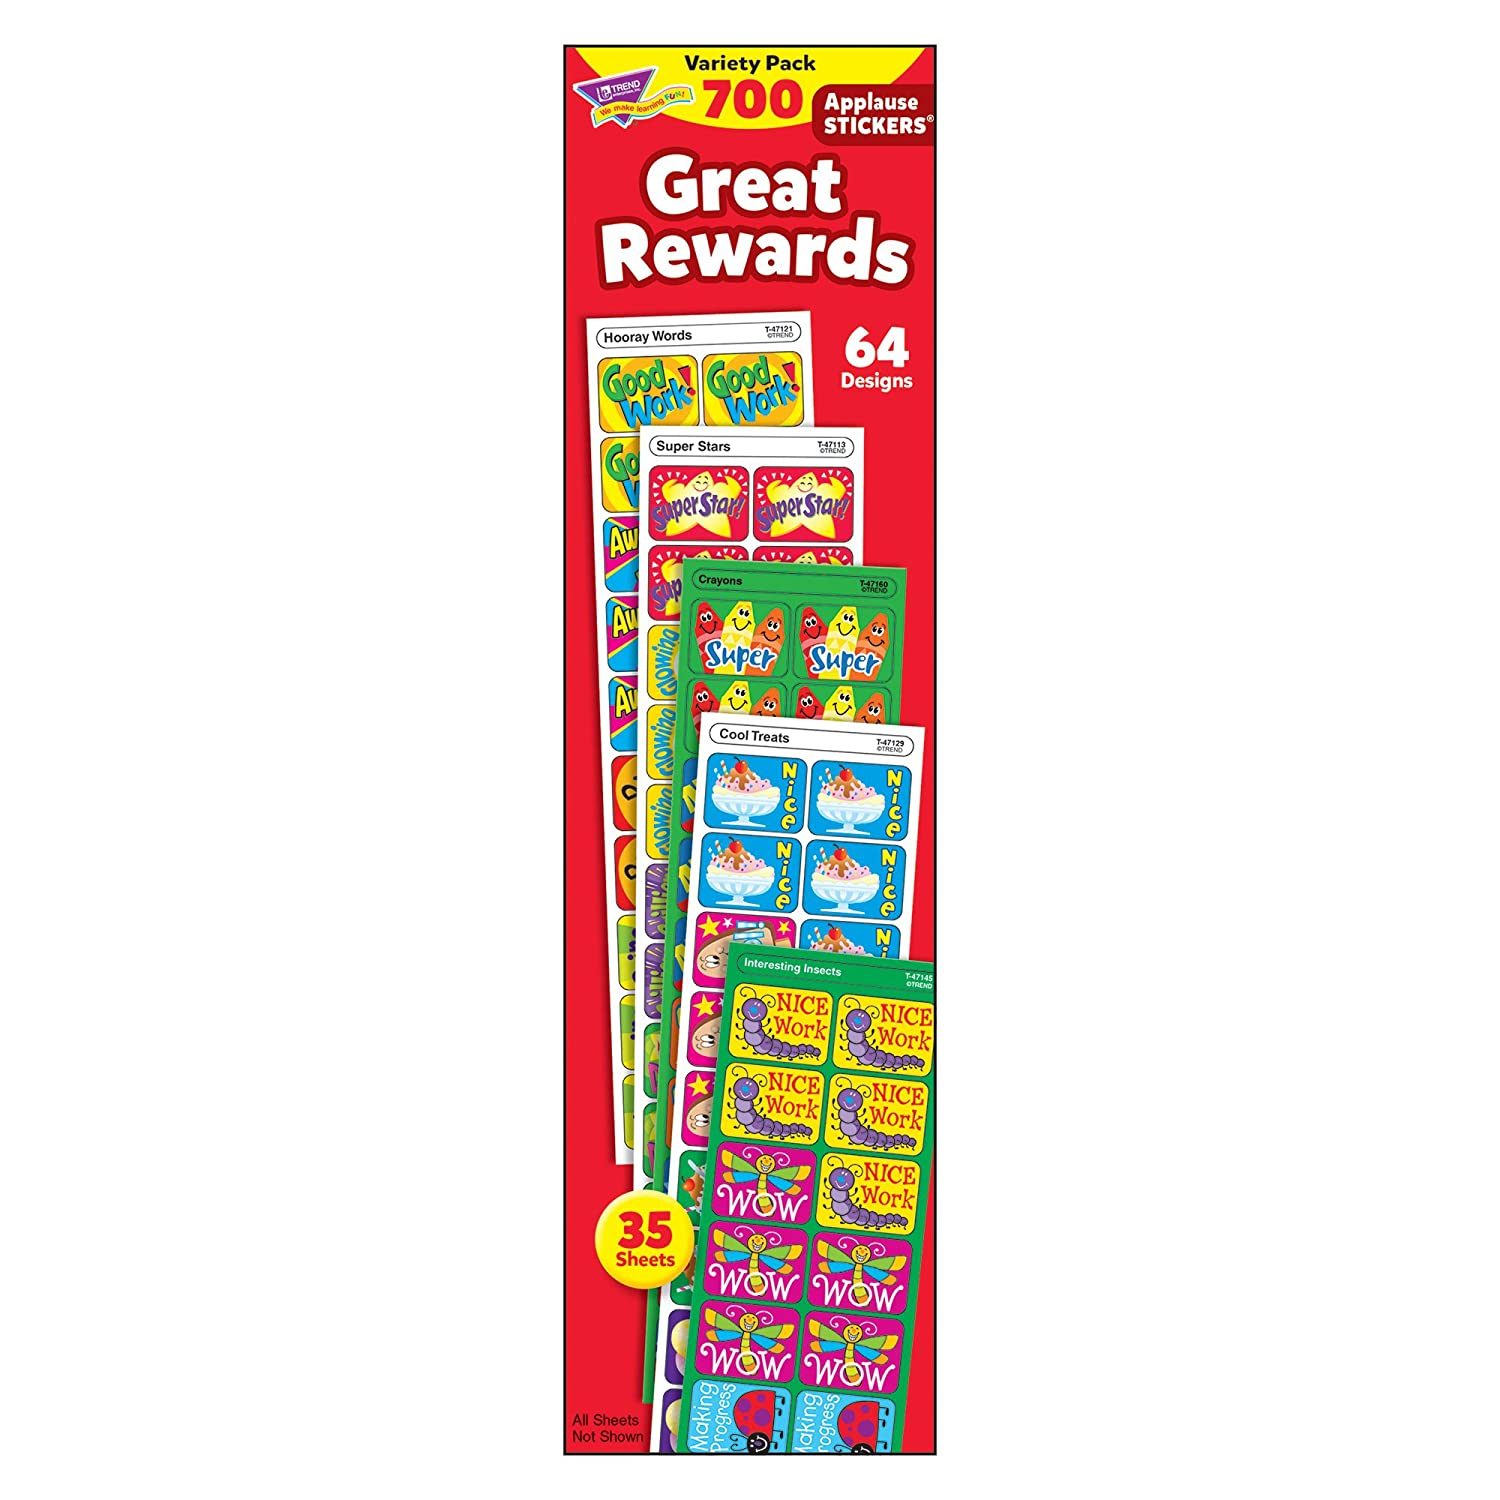 Applause Stickers Variety Pack, Great Rewards, 700/Pack TREND T-47910